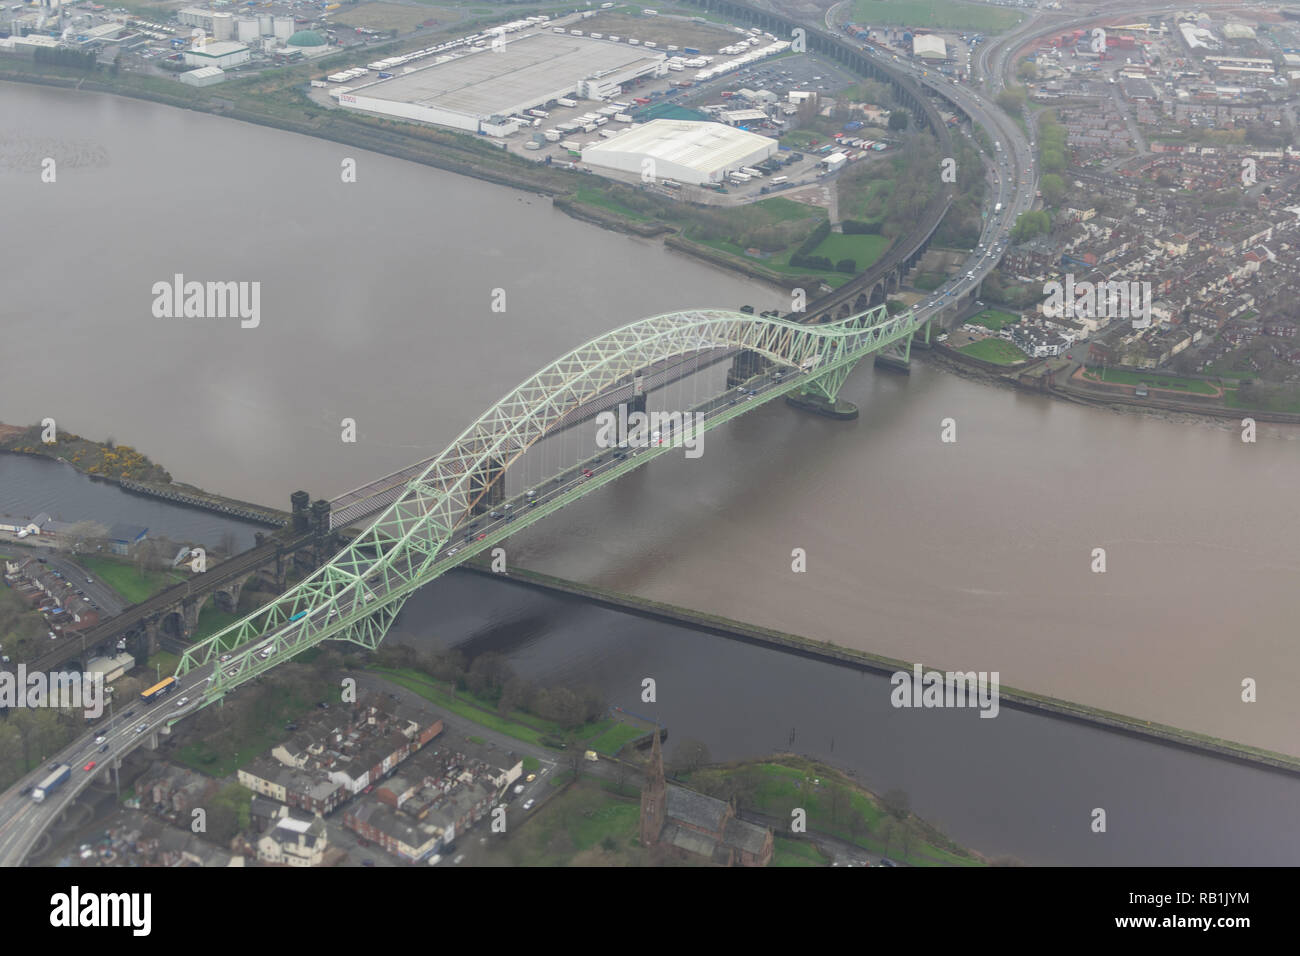 Flight over the Silver Jubilee bridge spanning Widnes and Runcorn prior to it's closure in 2017 - Stock Image